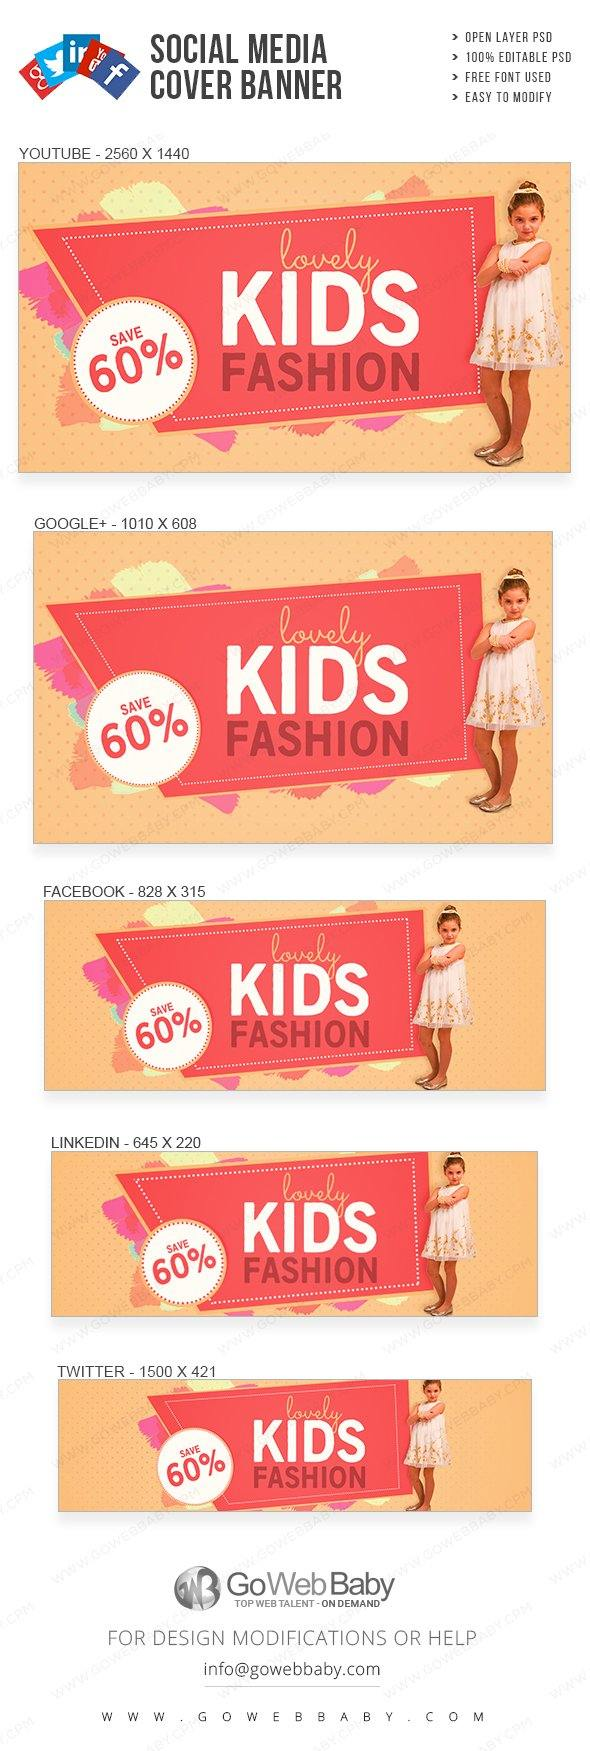 Social Media Cover Banner - Fashion for Kids For Website Marketing - GoWebBaby.Com